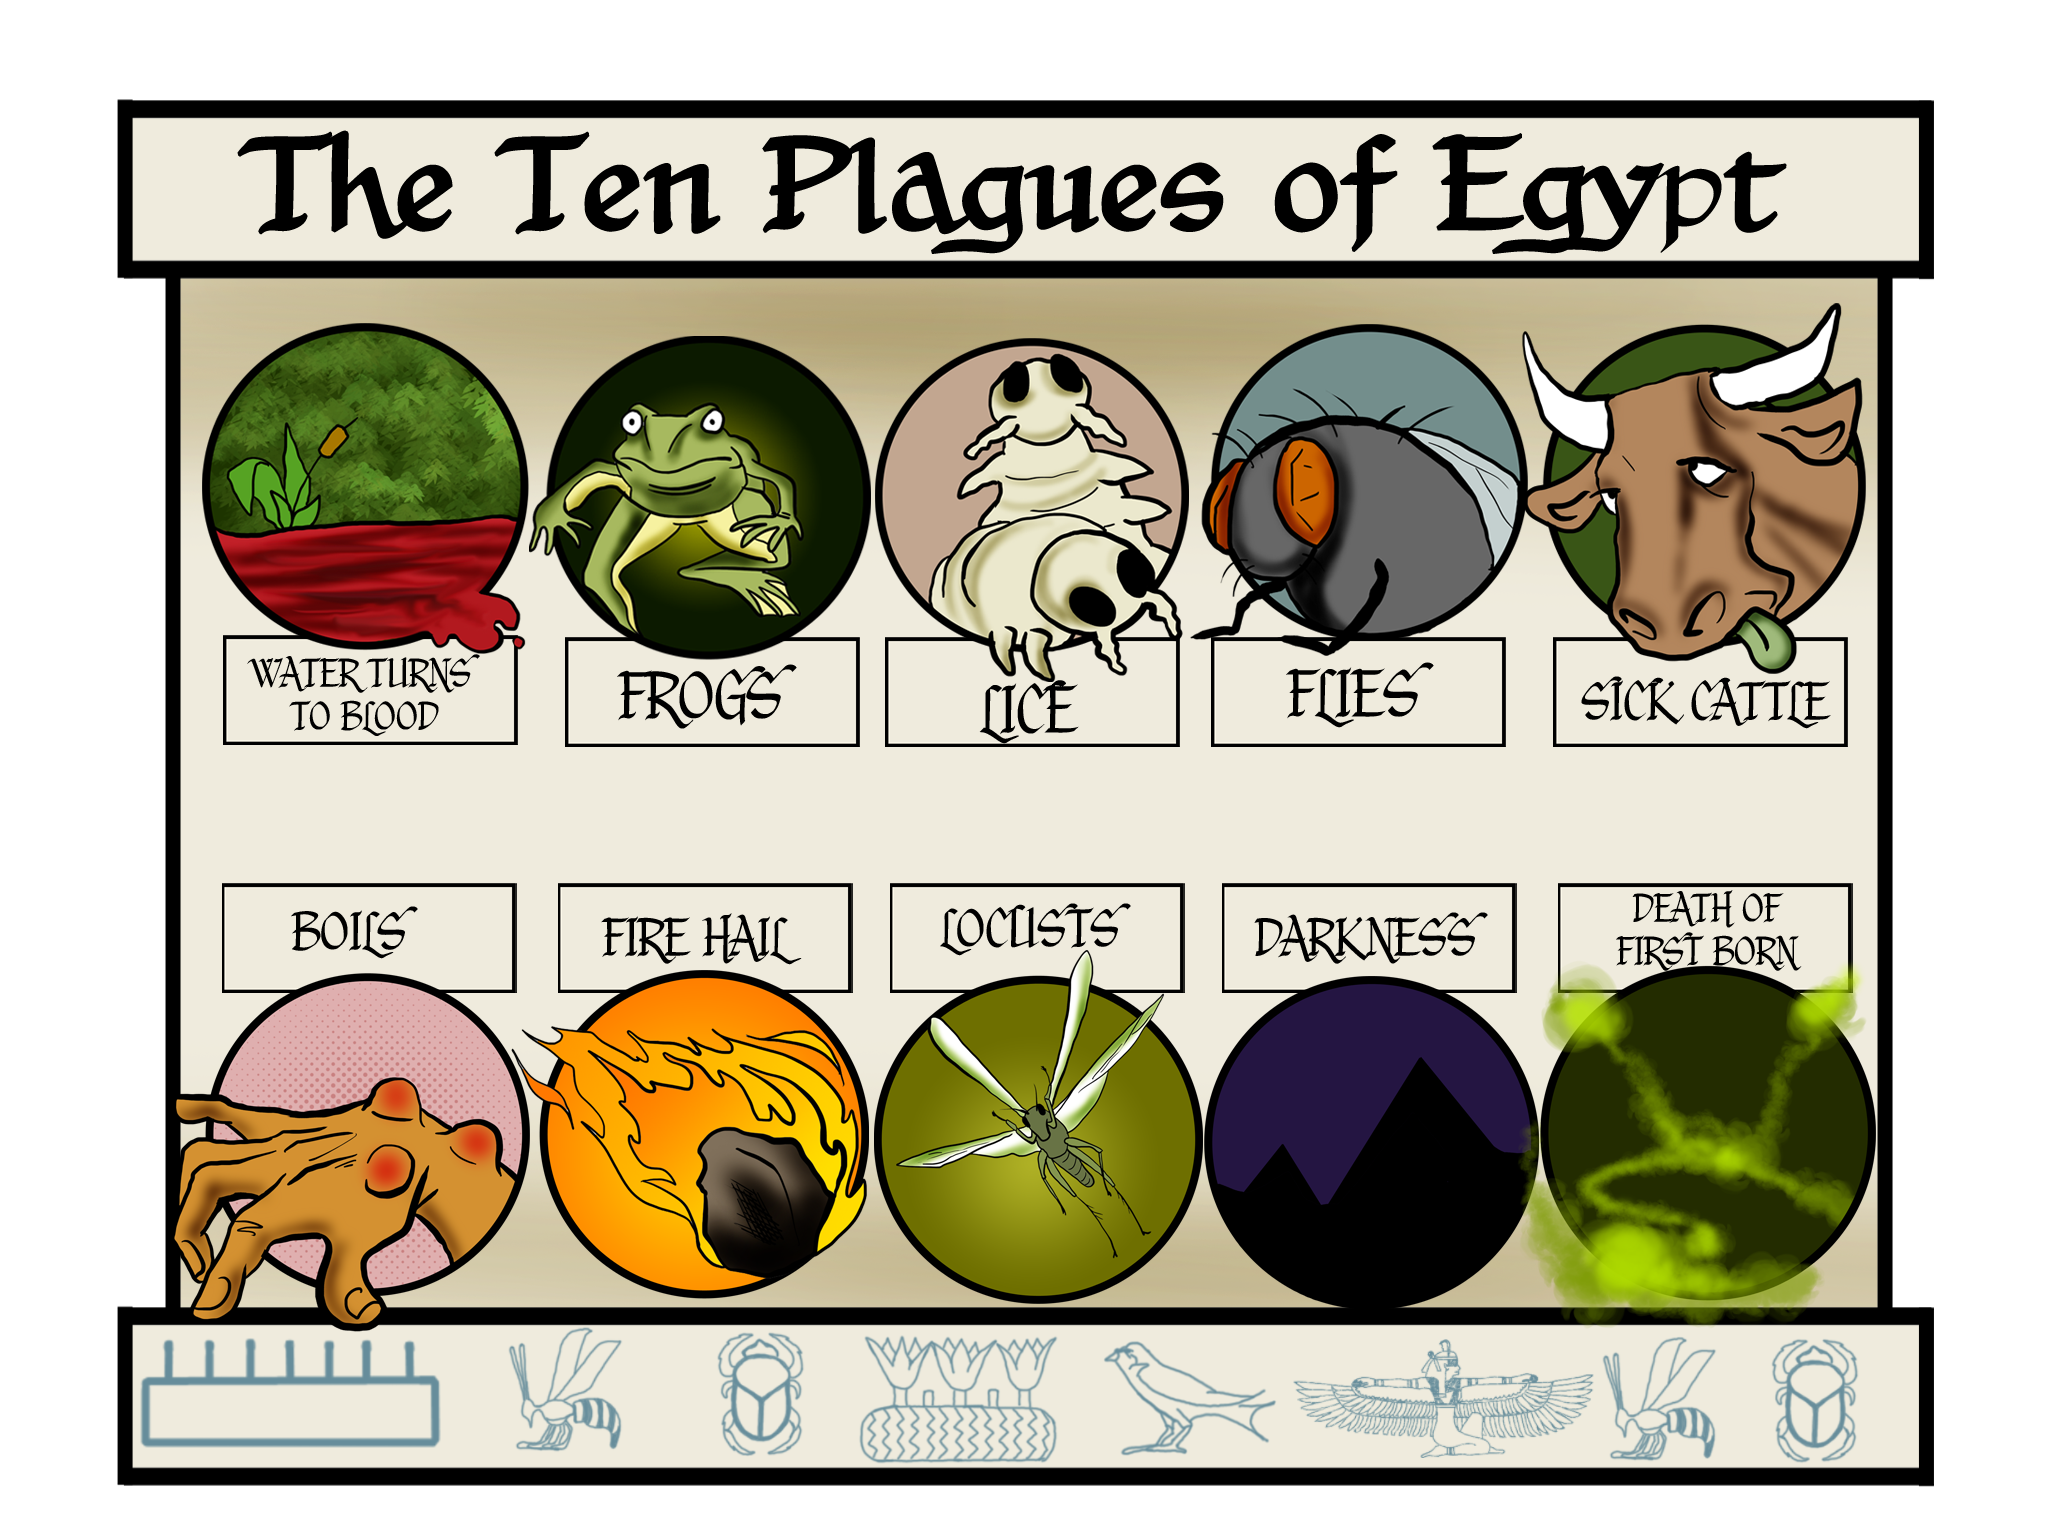 Did You Know That The Ten Plagues Of Egypt Were A Direct